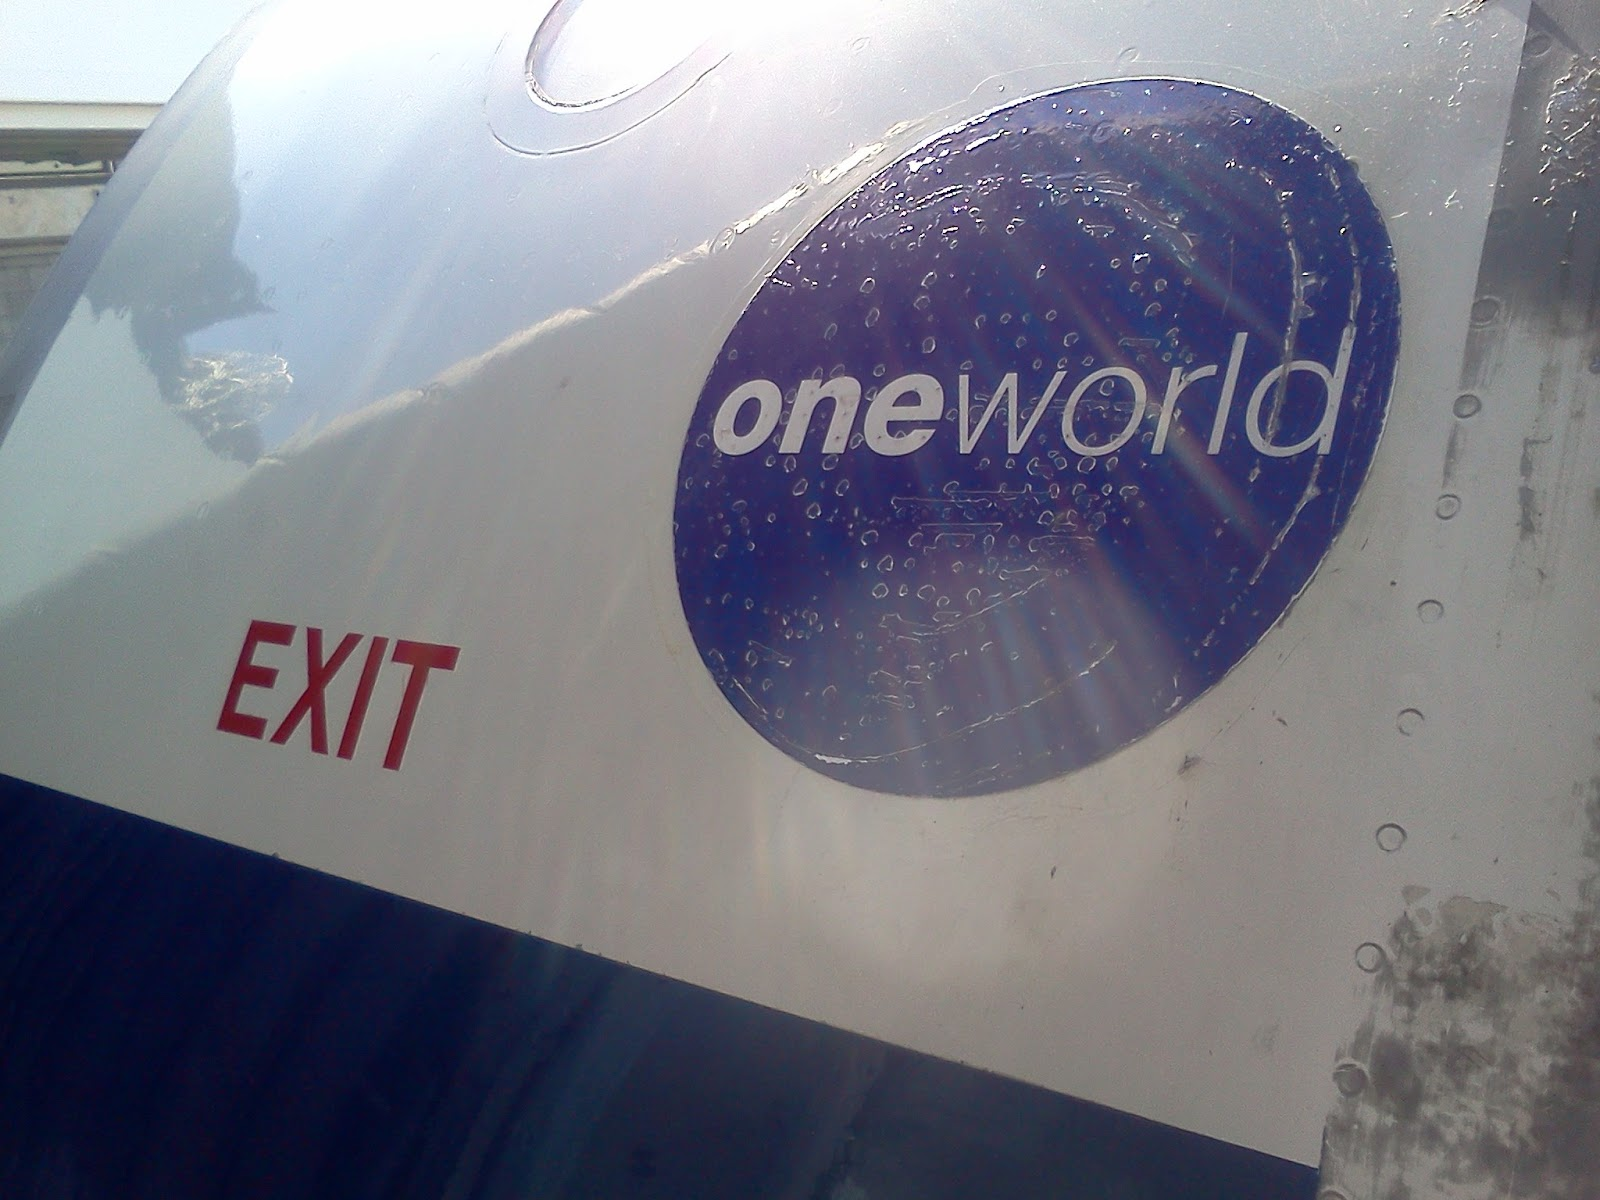 American Eagle A Member of the OneWorld Alliance